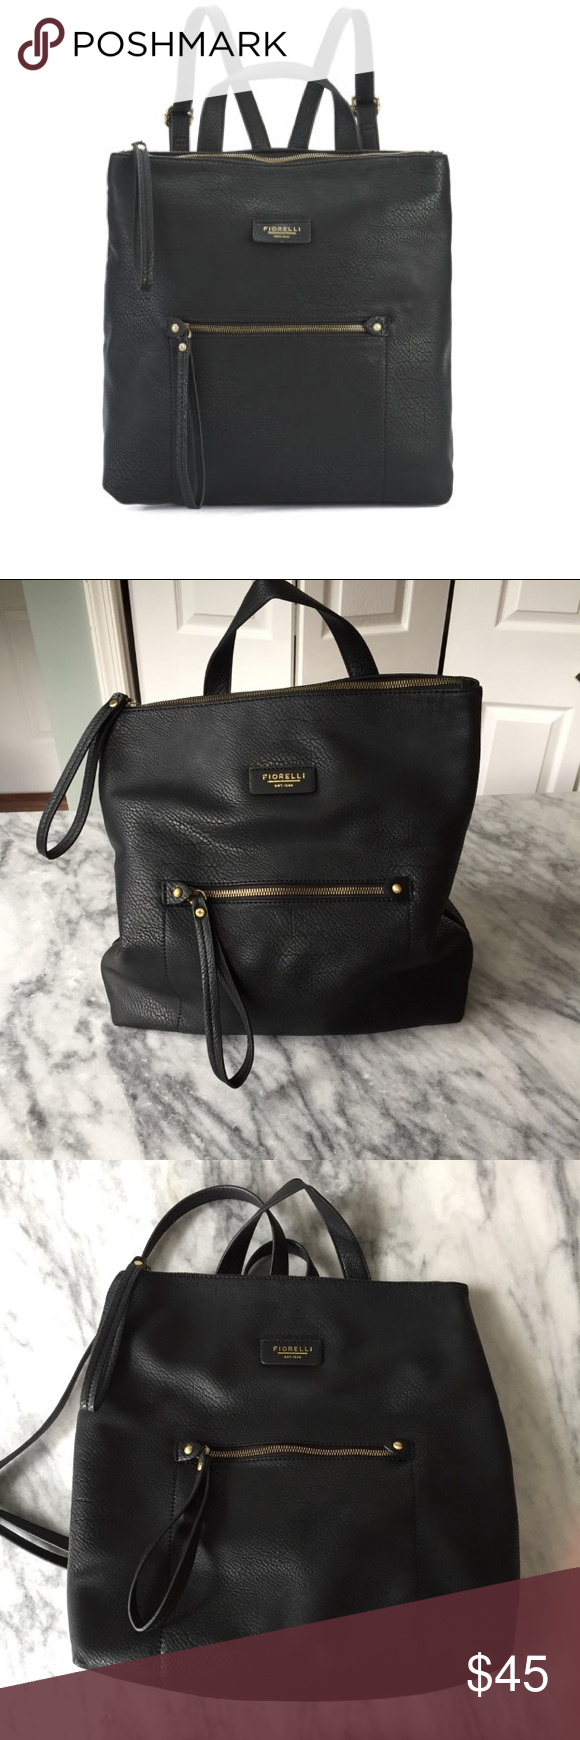 Fiorelli Lexi Backpack Black Best part about this backpack is the security  feature of having a